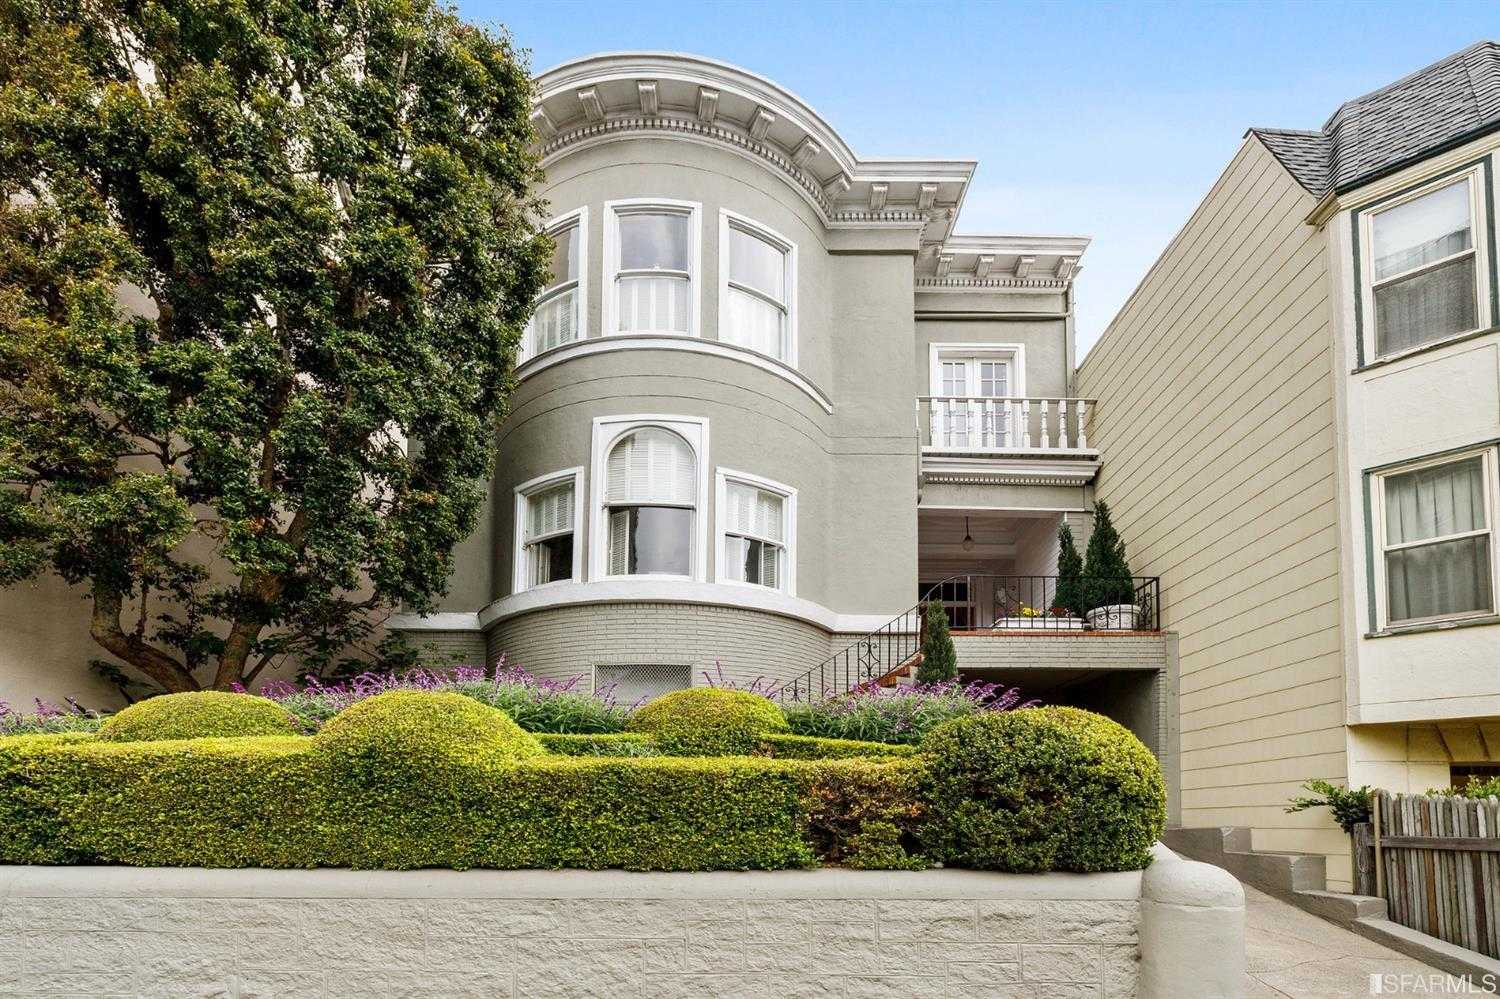 $1,595,000 - 2Br/1Ba -  for Sale in San Francisco